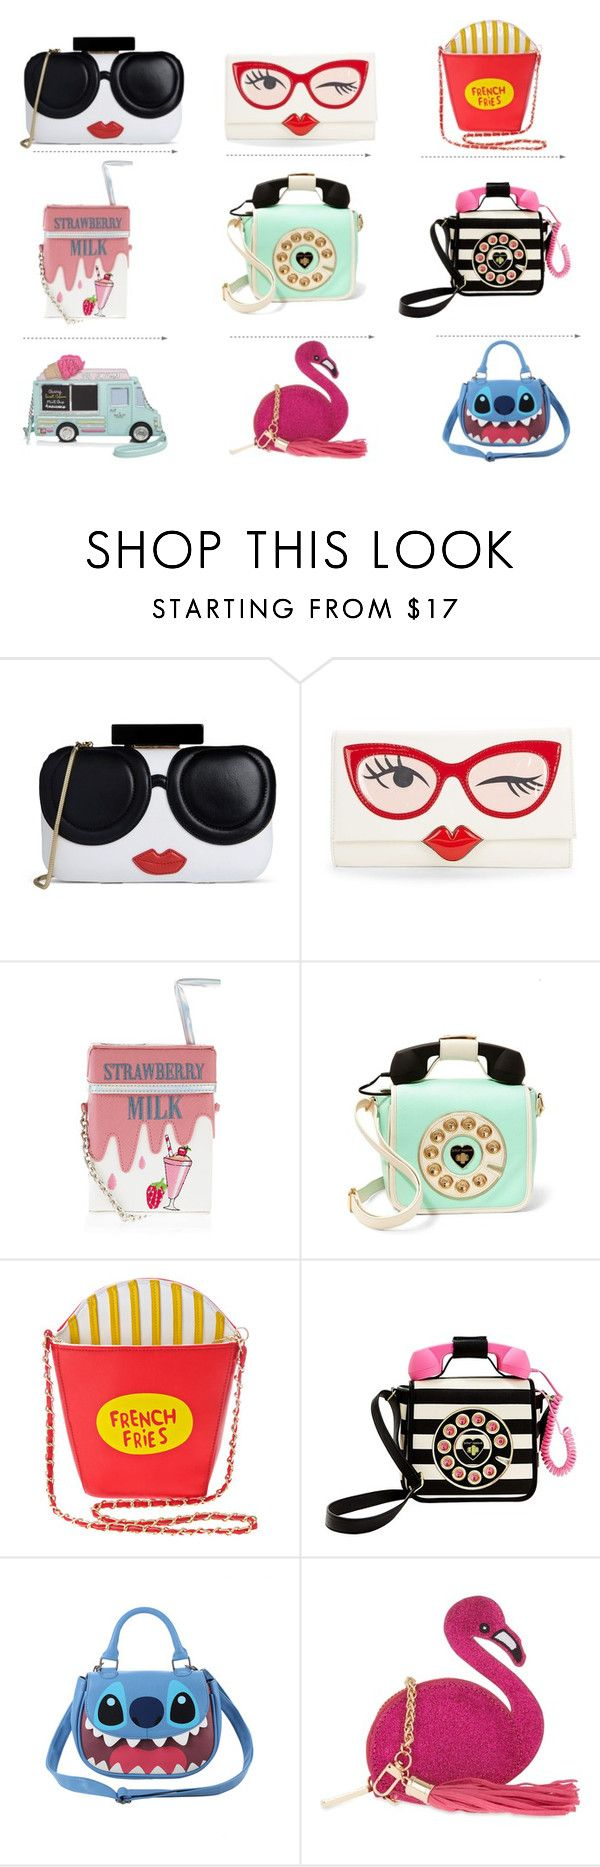 """""""funny bags and clutches"""" by dida71485 ❤ liked on Polyvore featuring Alice + Olivia, Kate Spade, Accessorize, Betsey Johnson, 3AM Imports, Disney and Skinnydip"""